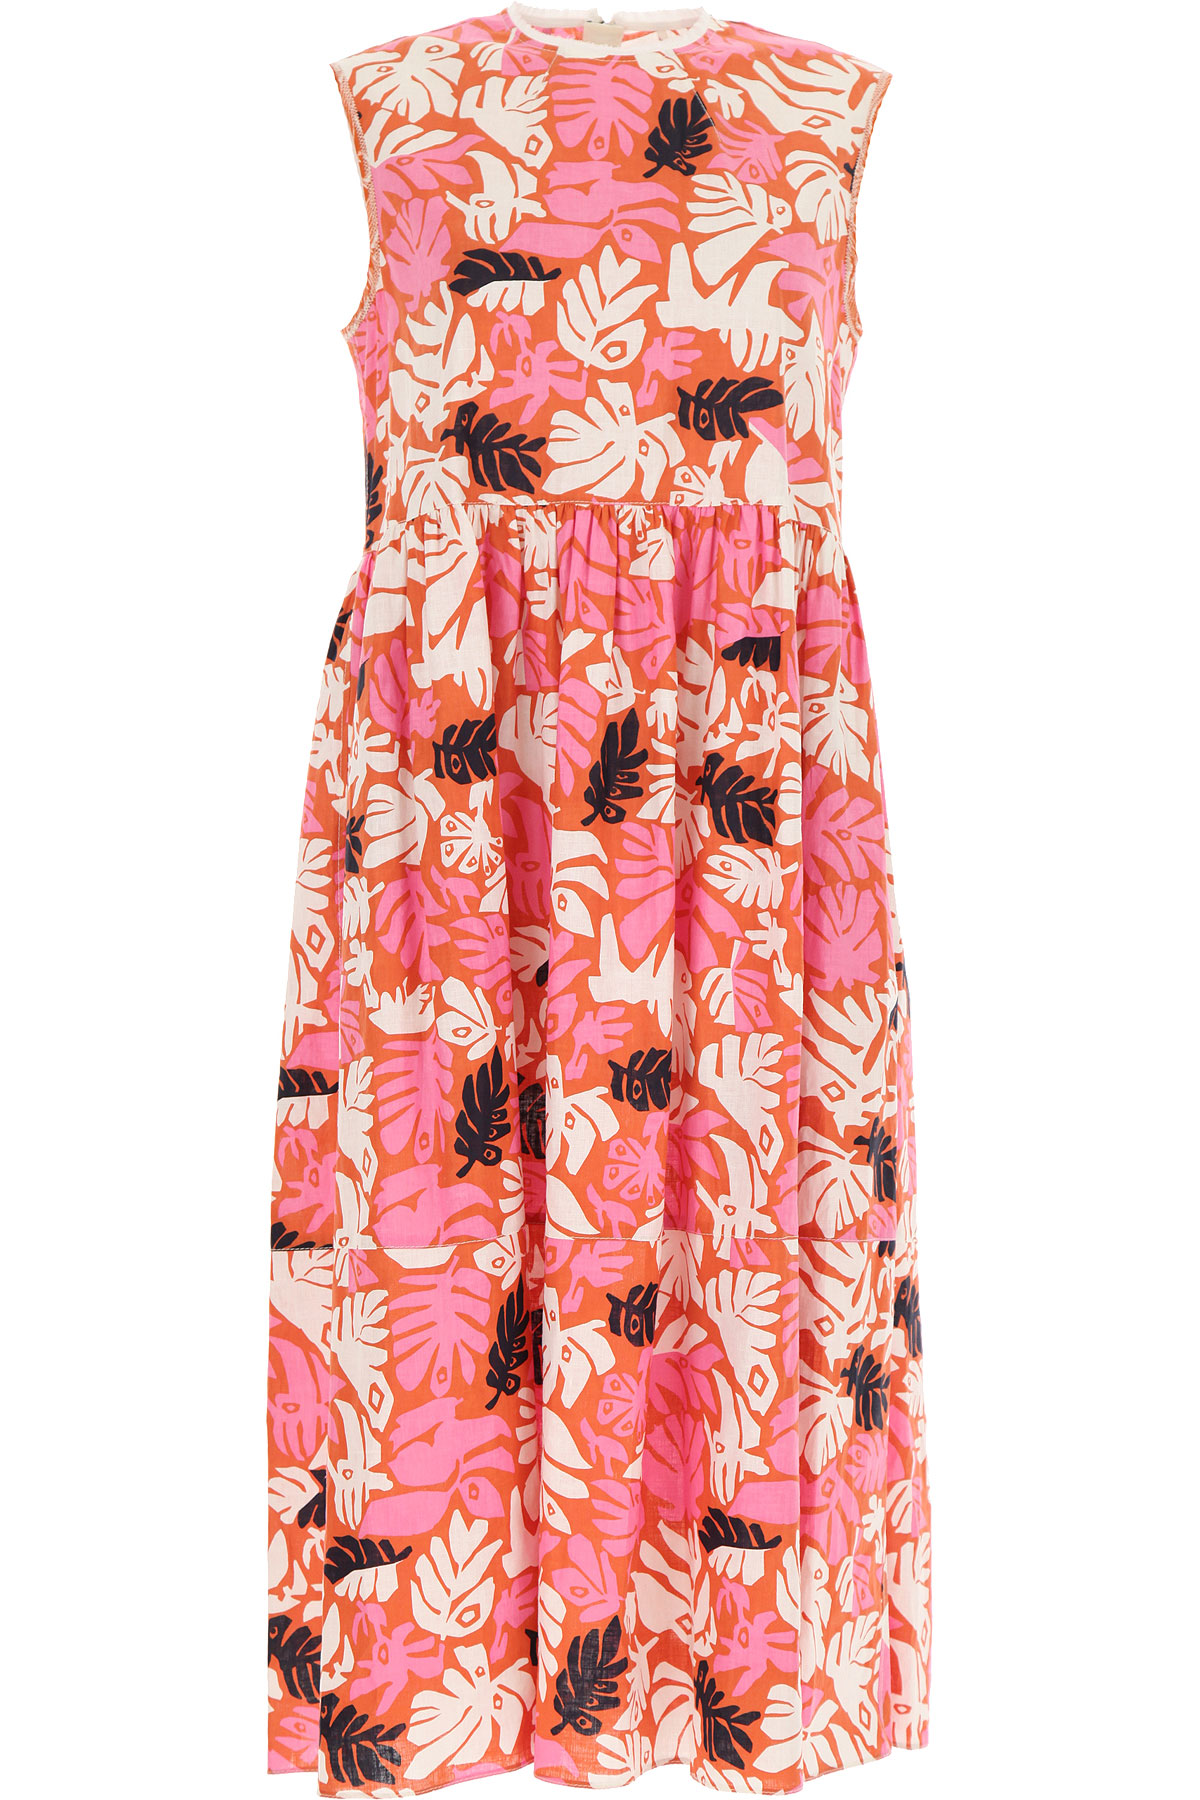 Marni Dress for Women, Evening Cocktail Party On Sale, Pink, linen, 2019, 4 6